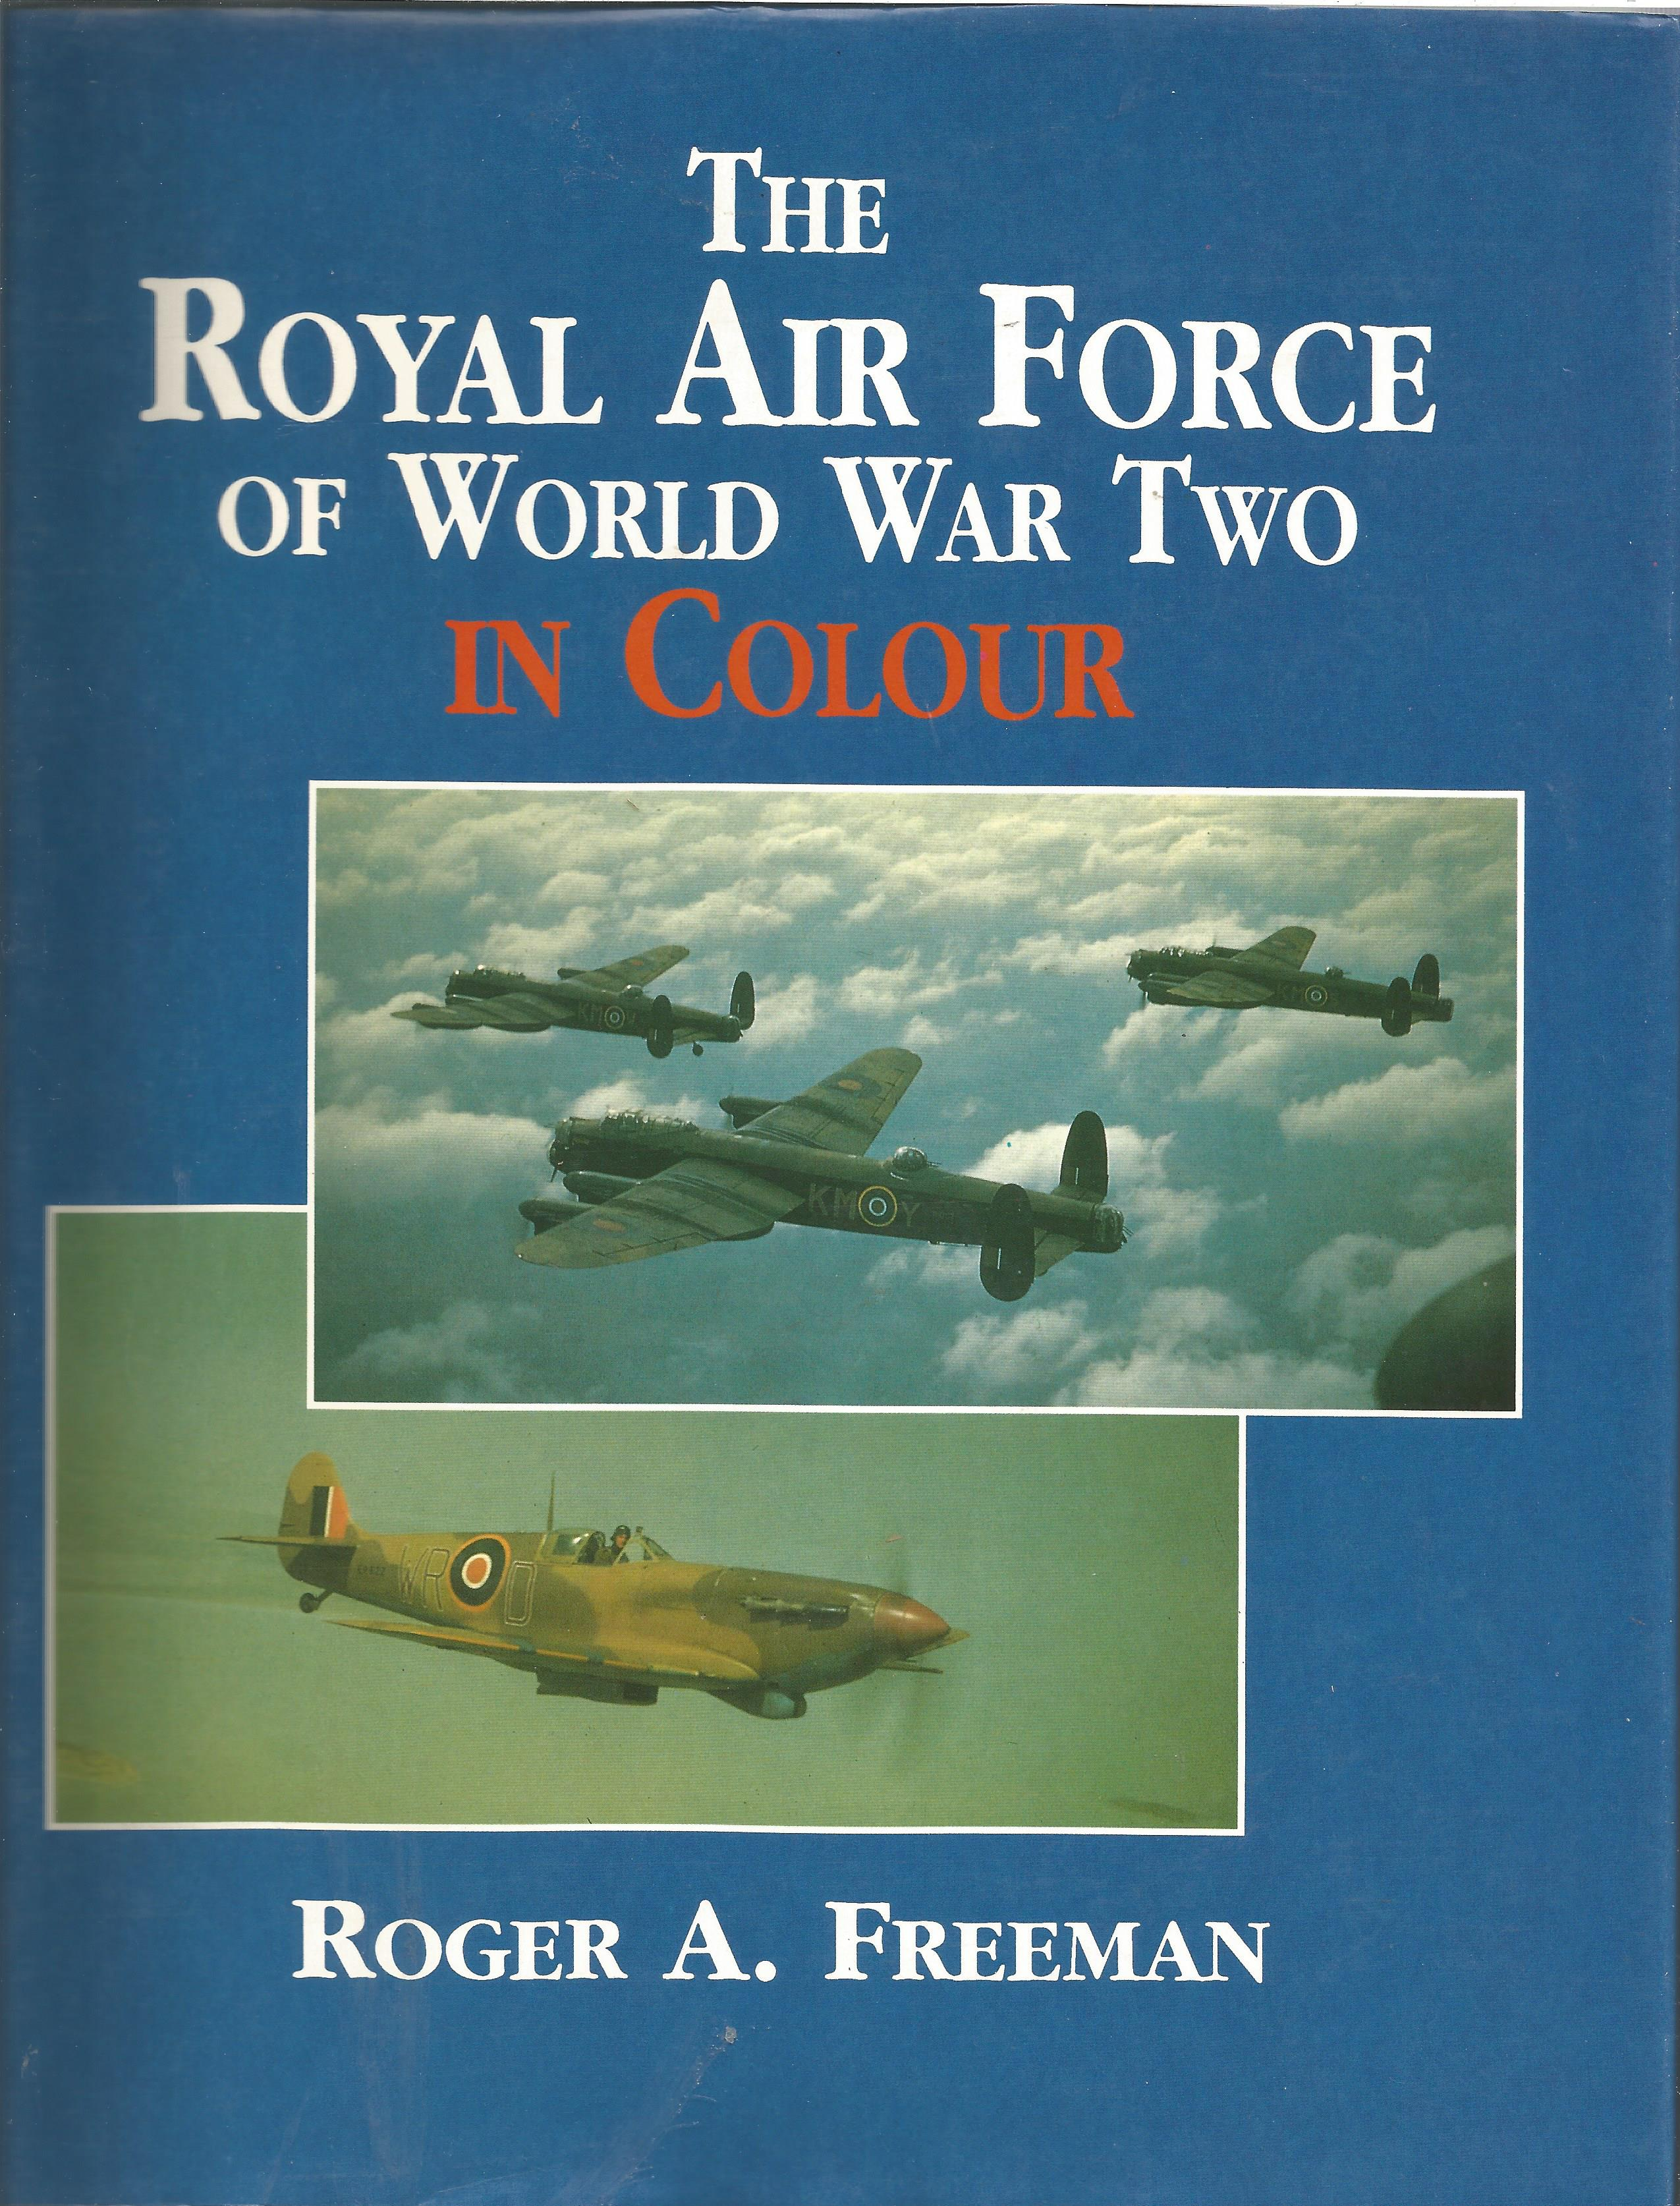 Sqn Ldr Neville Duke DSO DFC signed bookplate in The Royal Air Force of WWII Freeman, Roger hardback